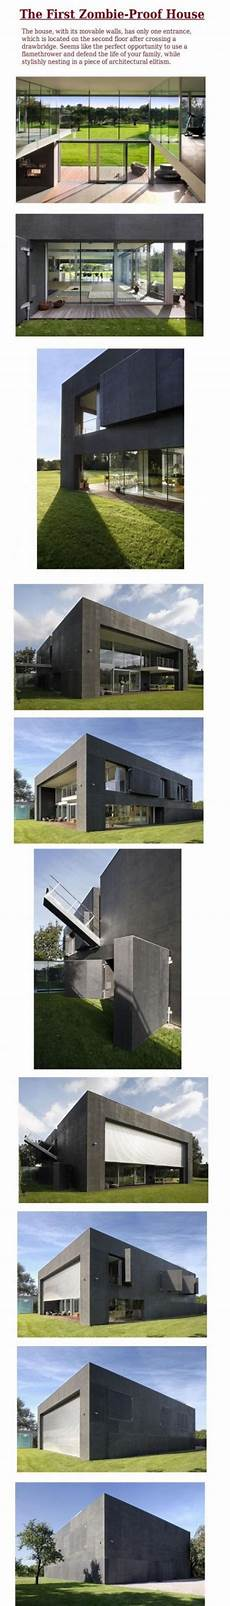 zombie proof house plans zombie proof house zombie proof house zombie apocalypse